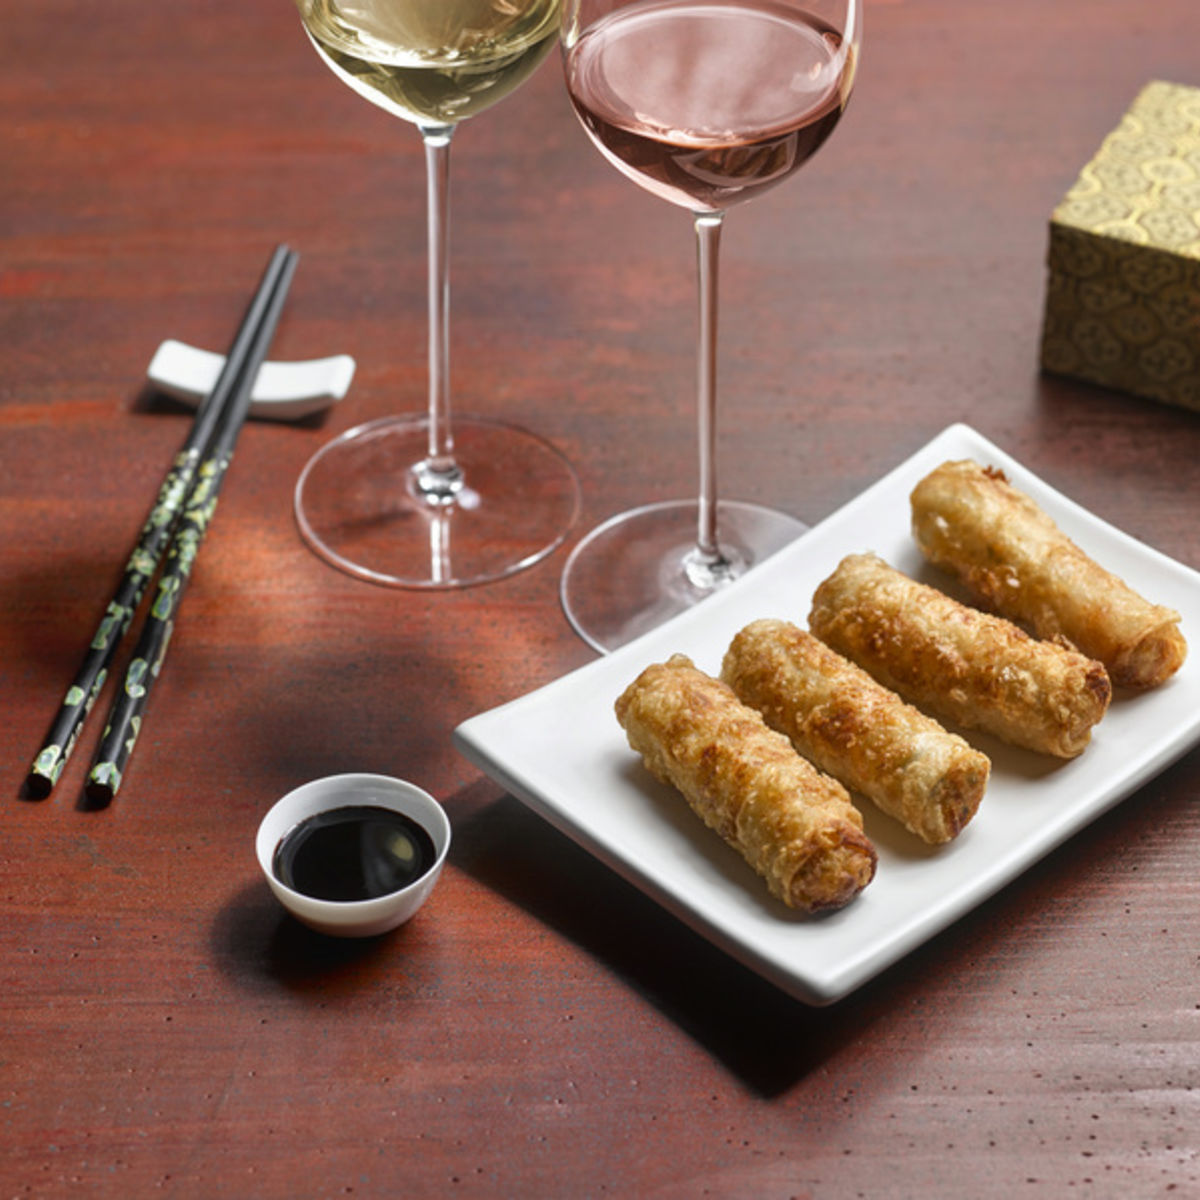 The picture shows fried spring rolls and two glasses, filled with white and rosé wine.